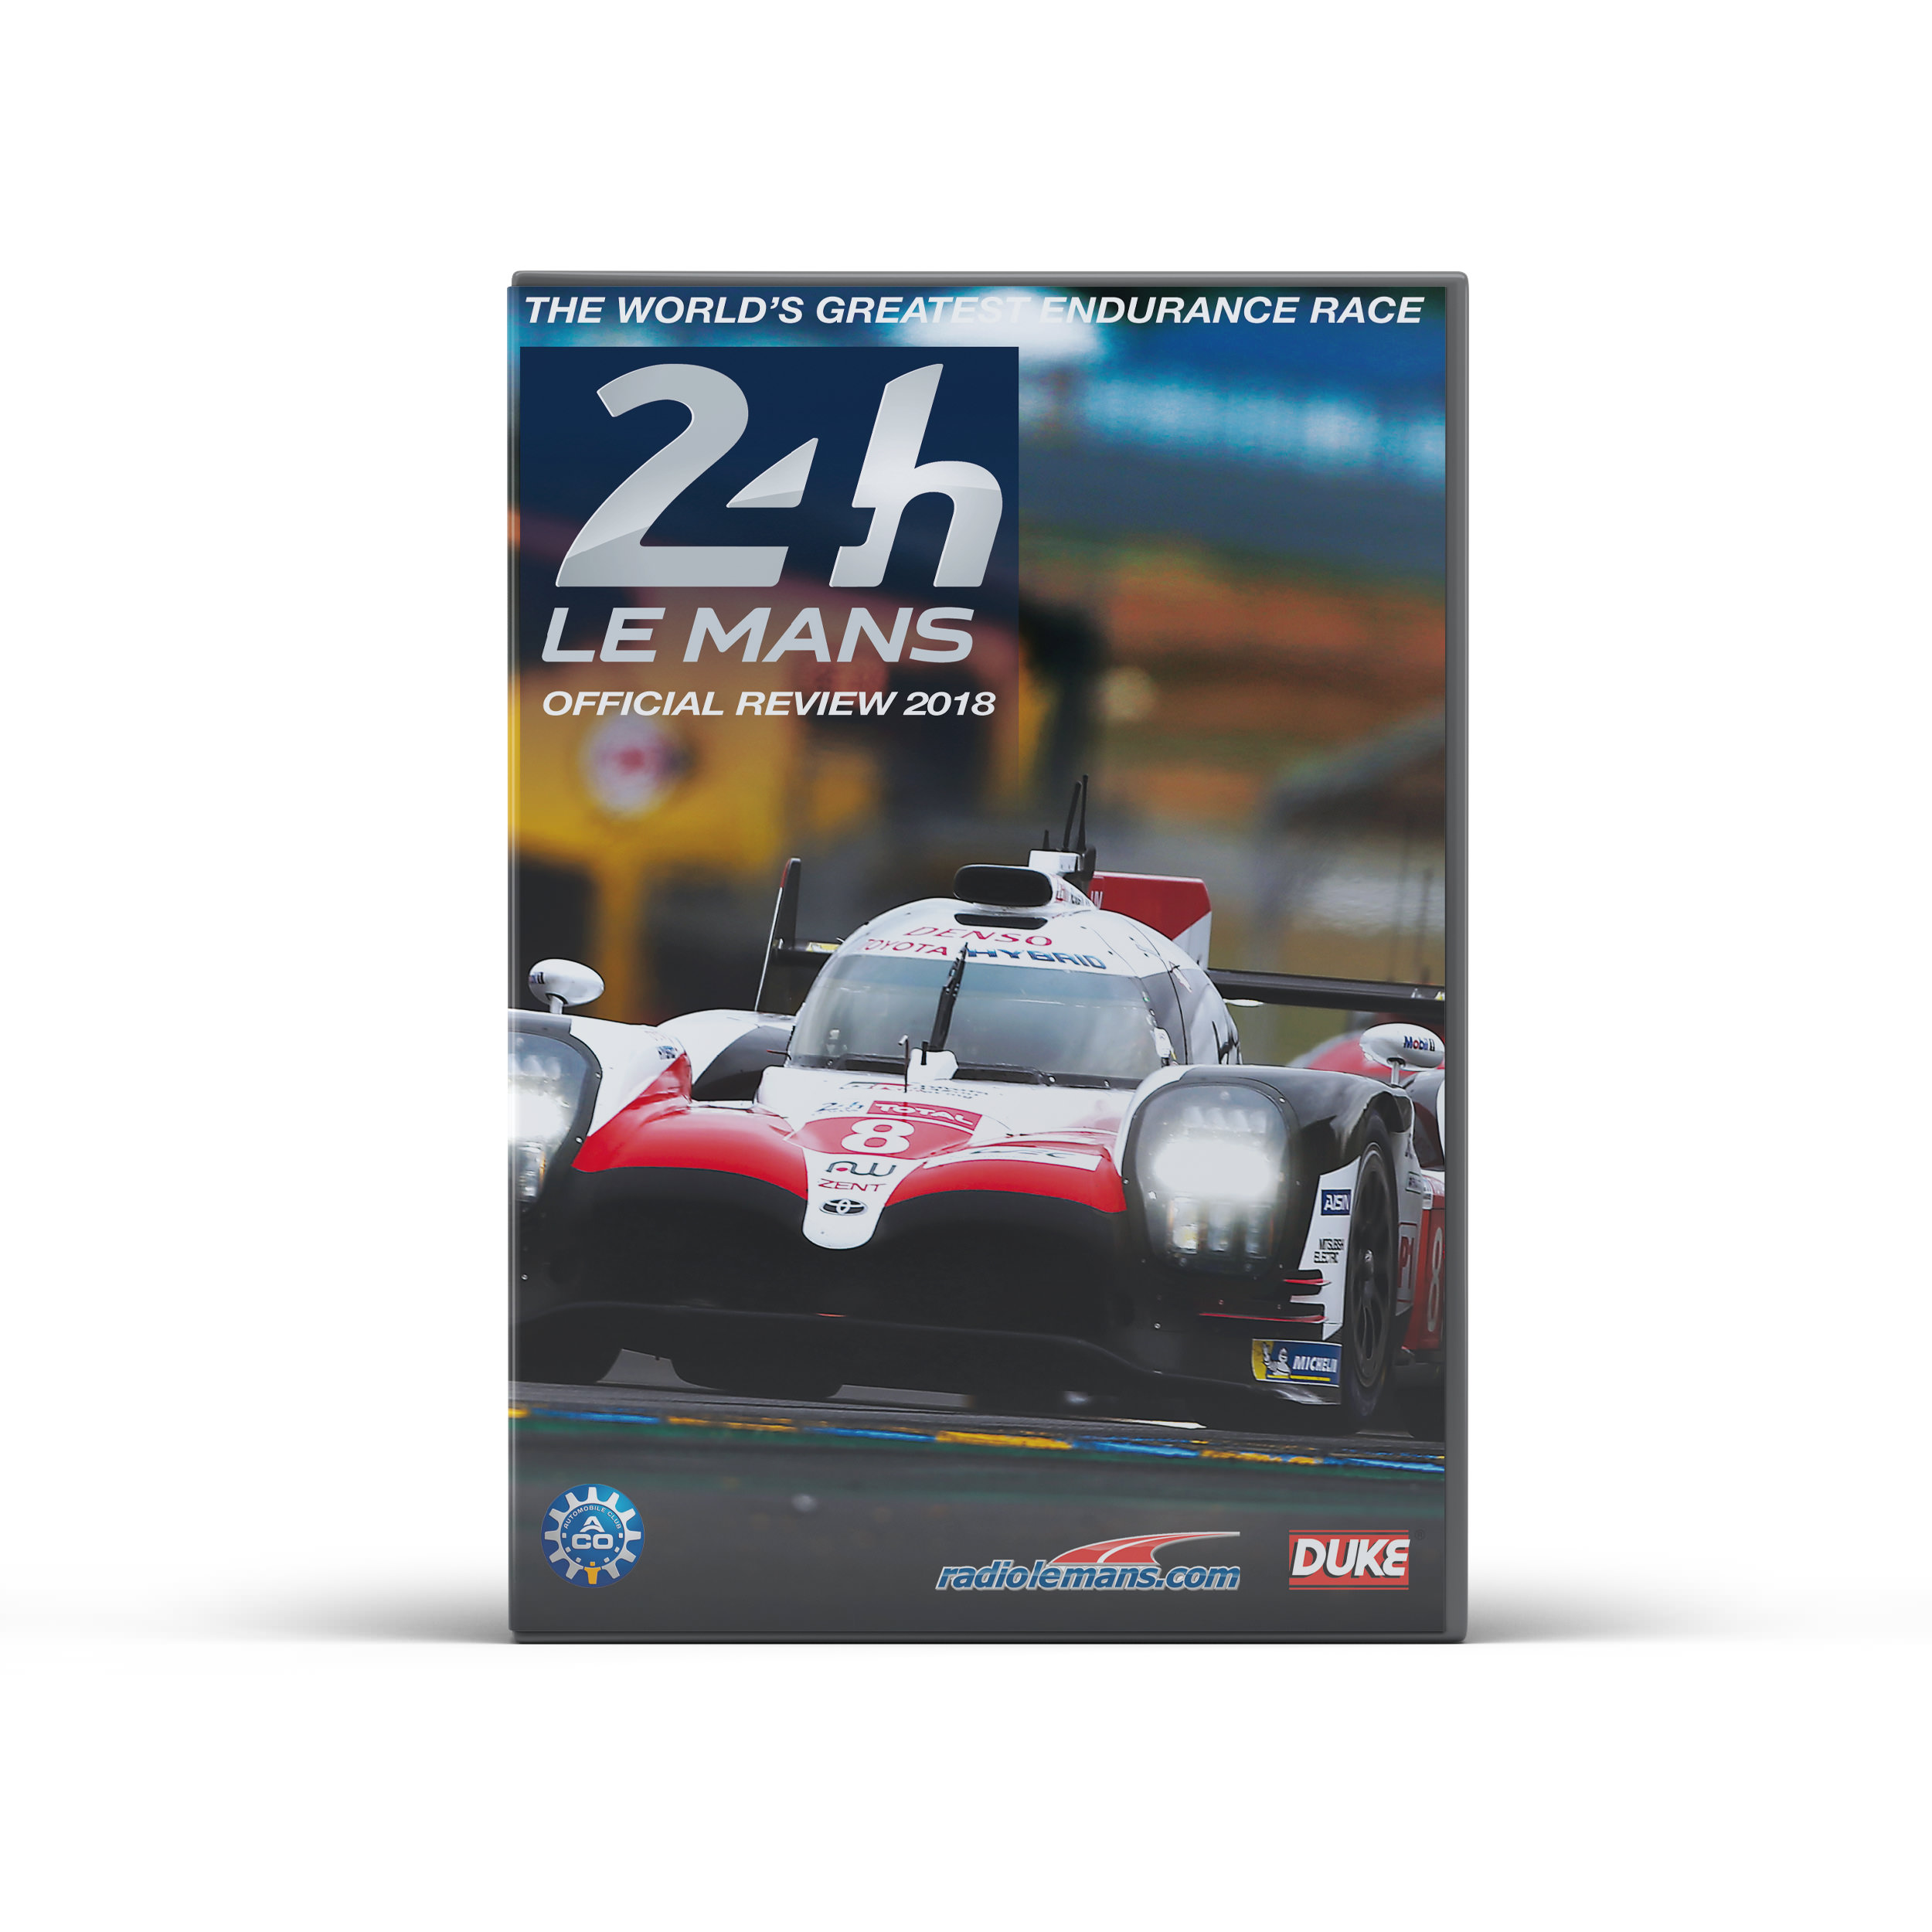 Product image for Le Mans 2018 DVD/Blu-ray